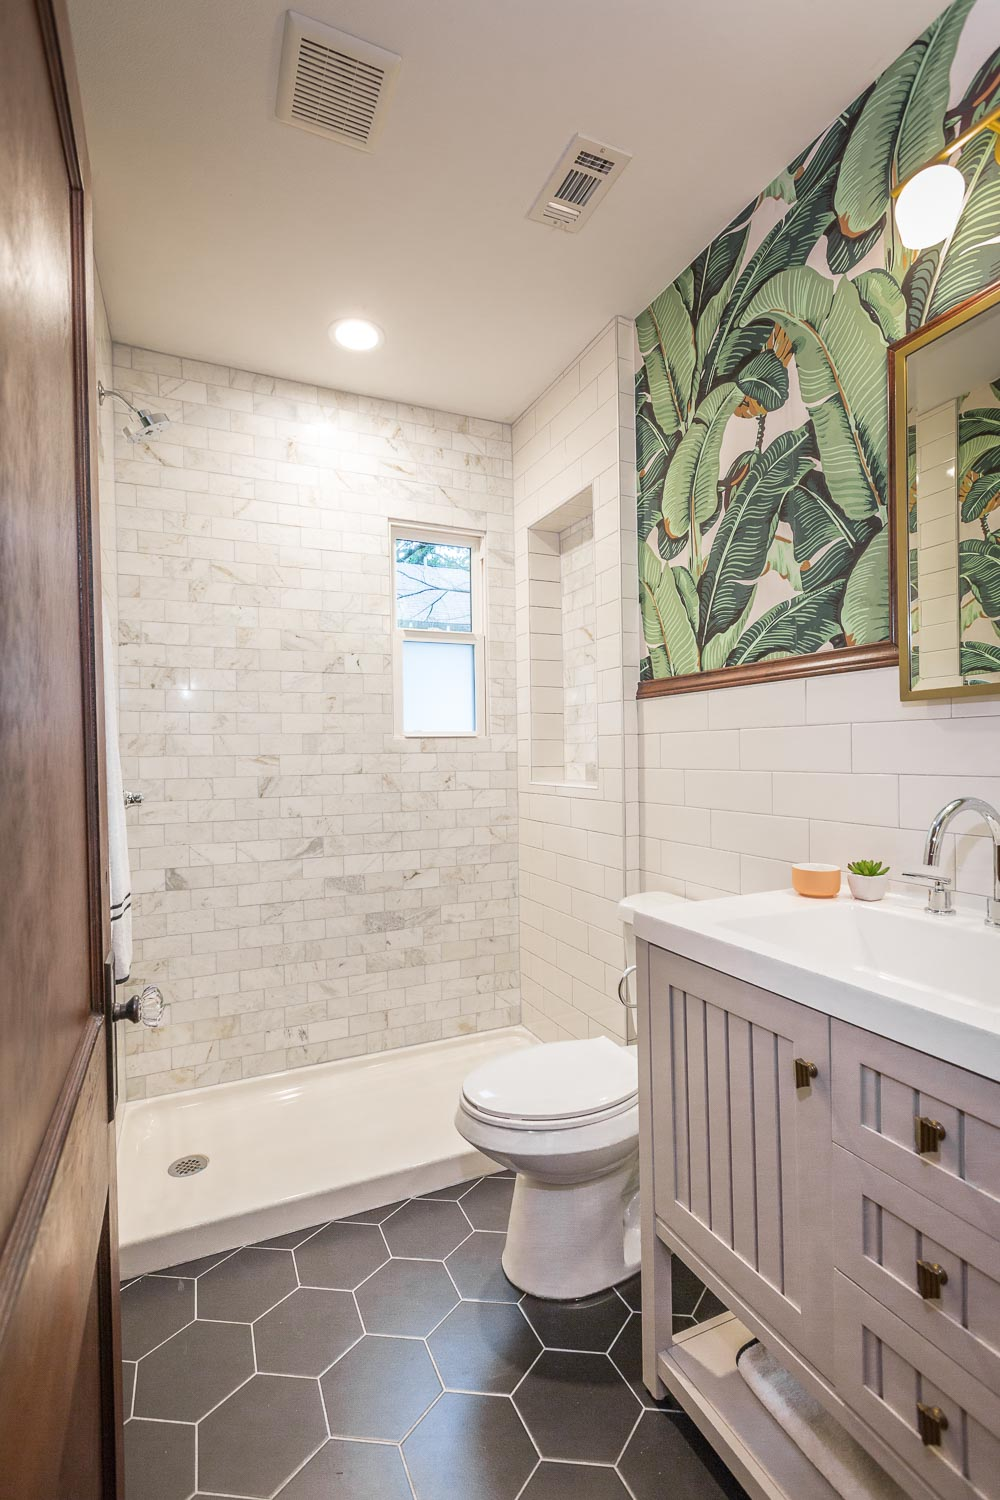 Another view of the master bathroom in this amazing bungalow.